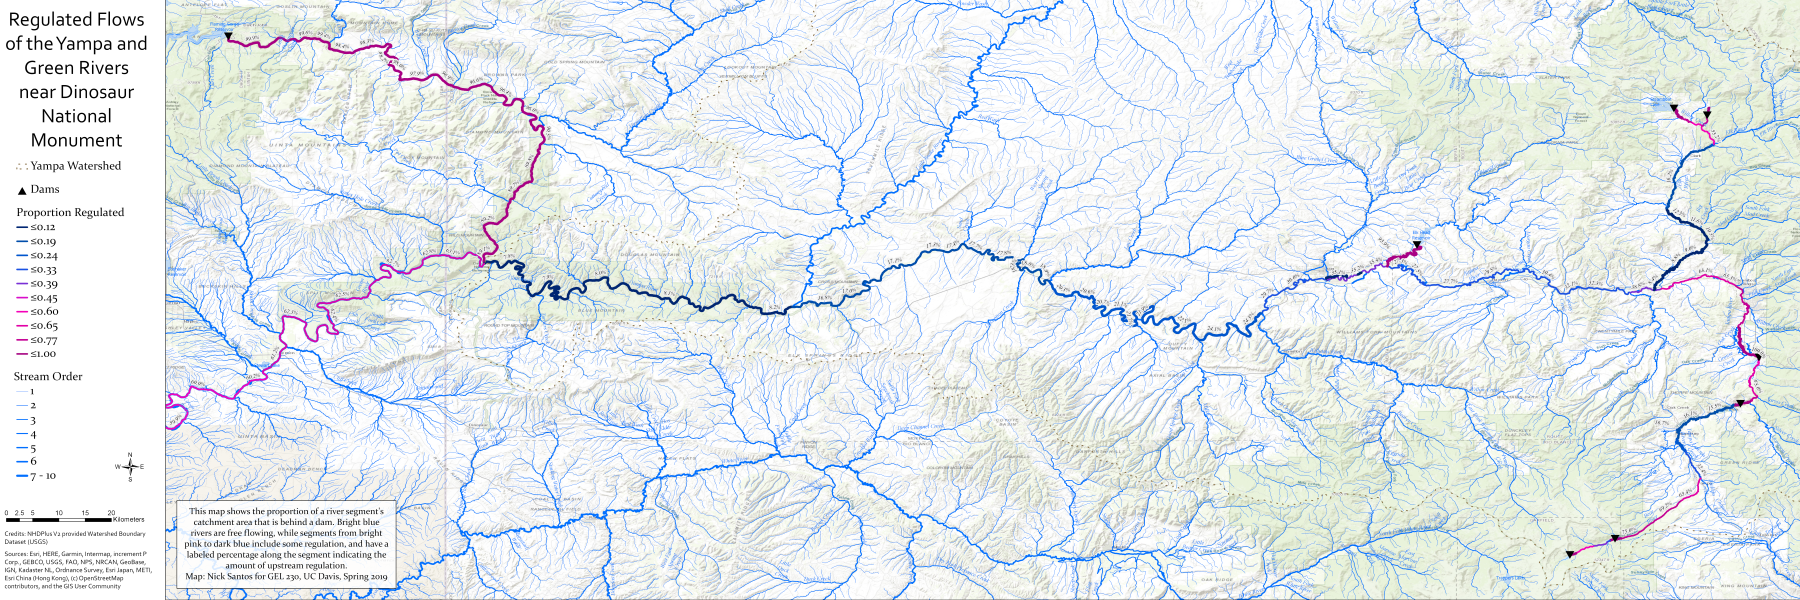 Low-resolution print layout of the Yampa-Green Flow Regulation Map